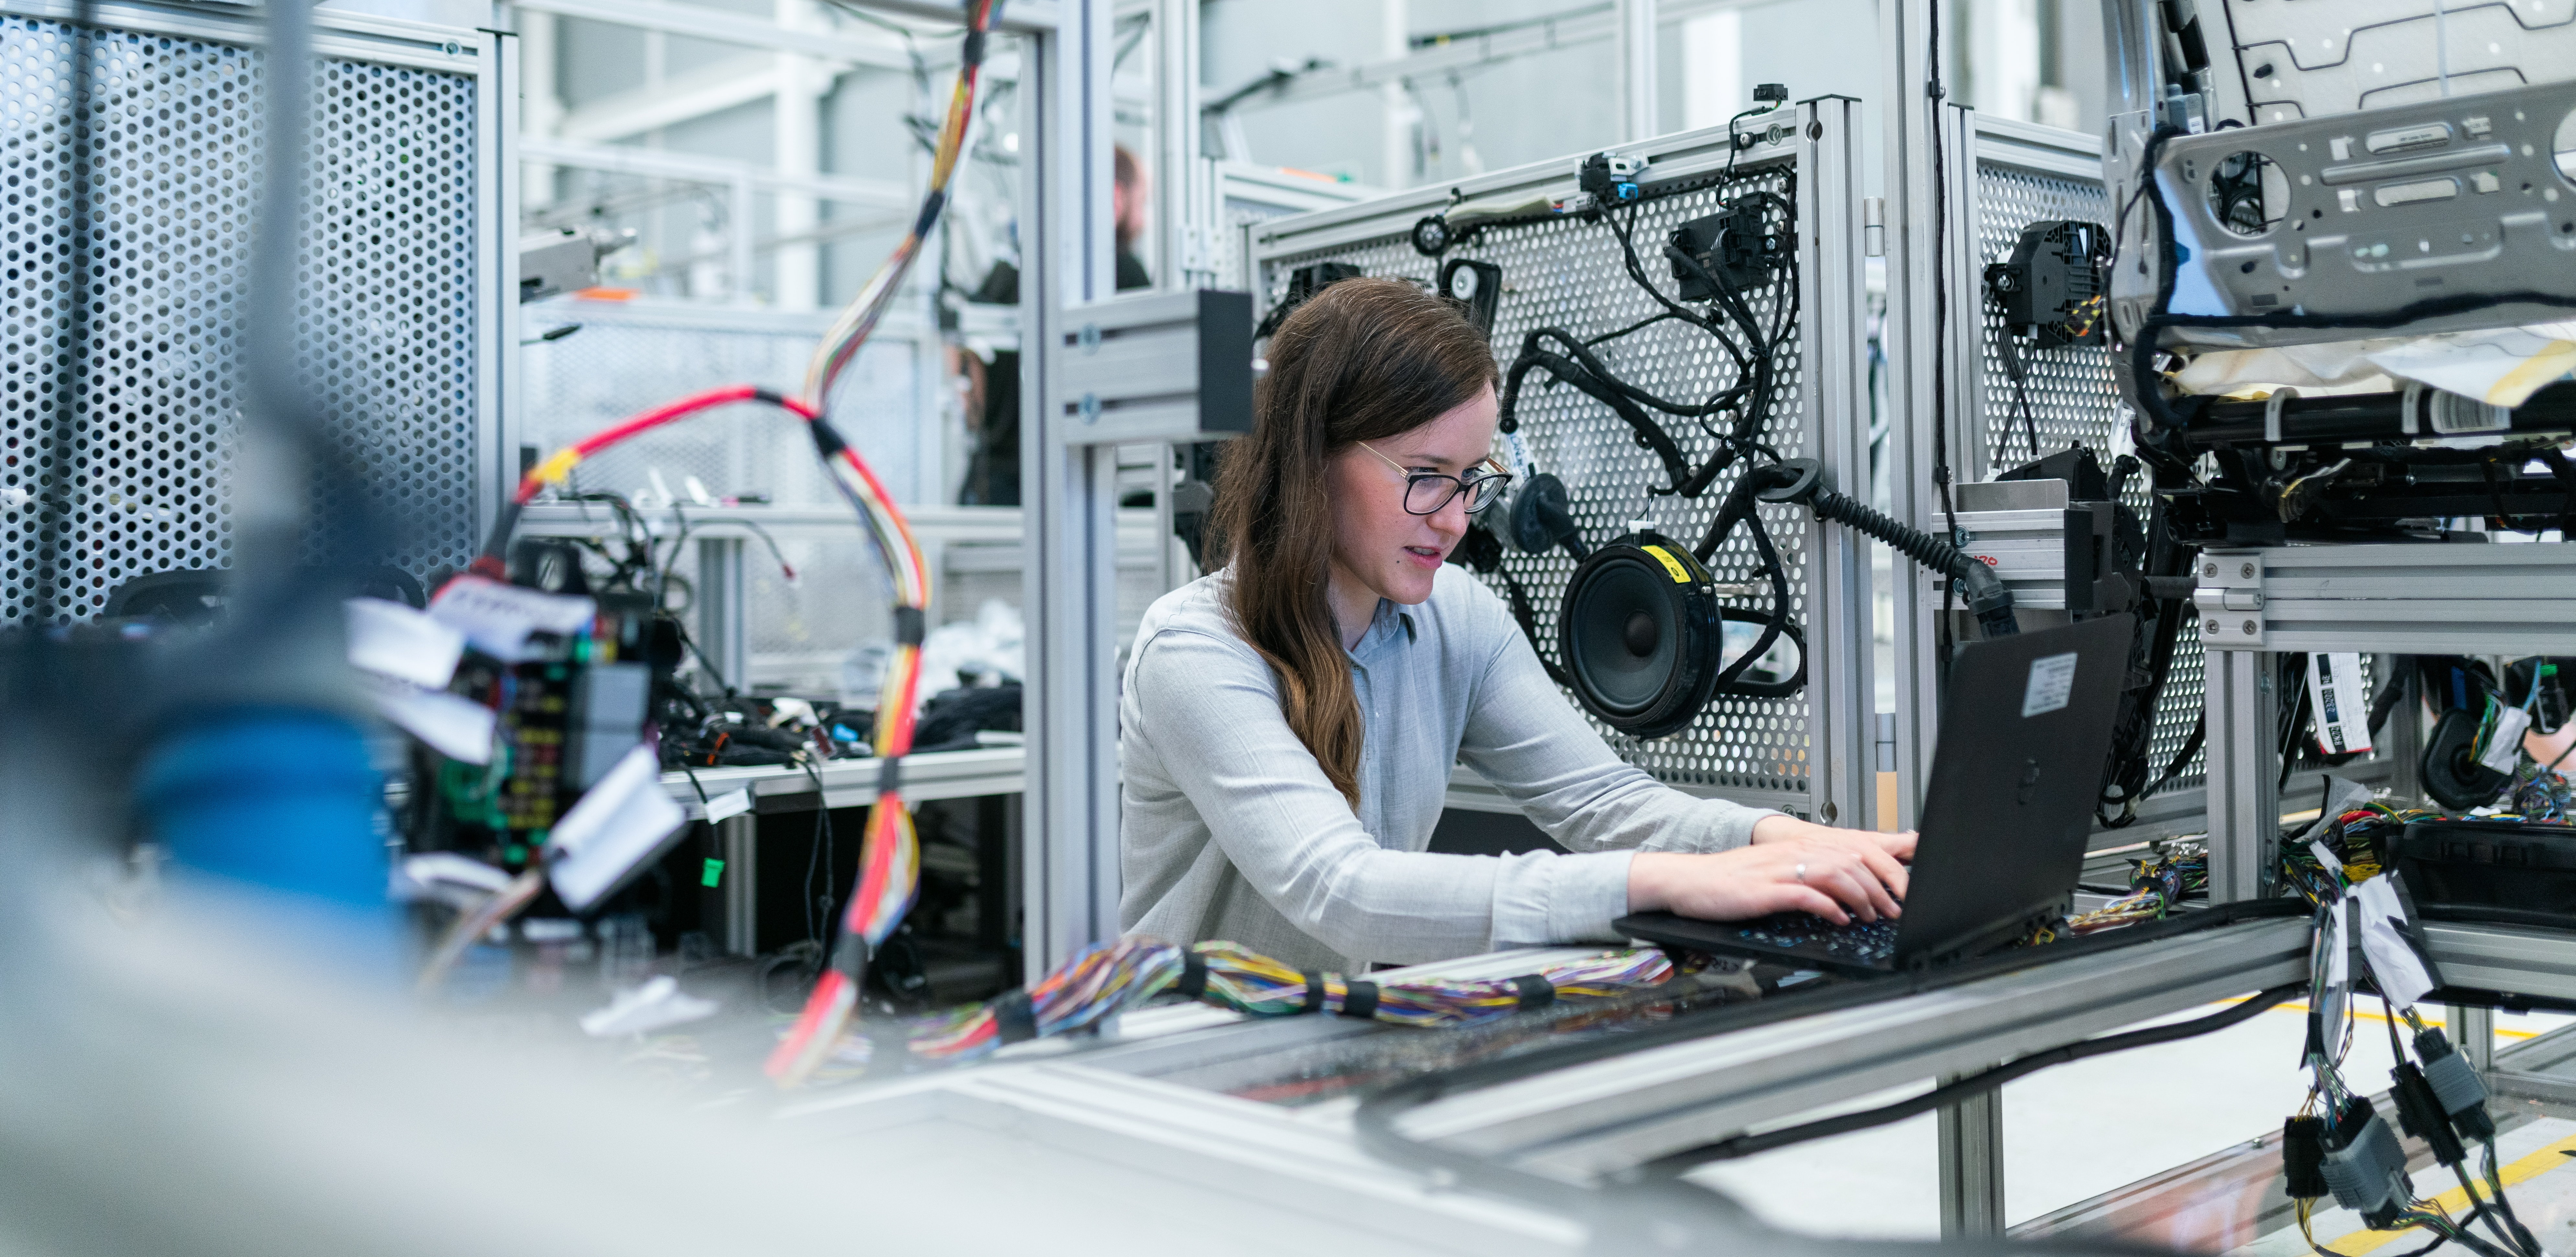 woman working on a laptop in an engineering manufacturing environment